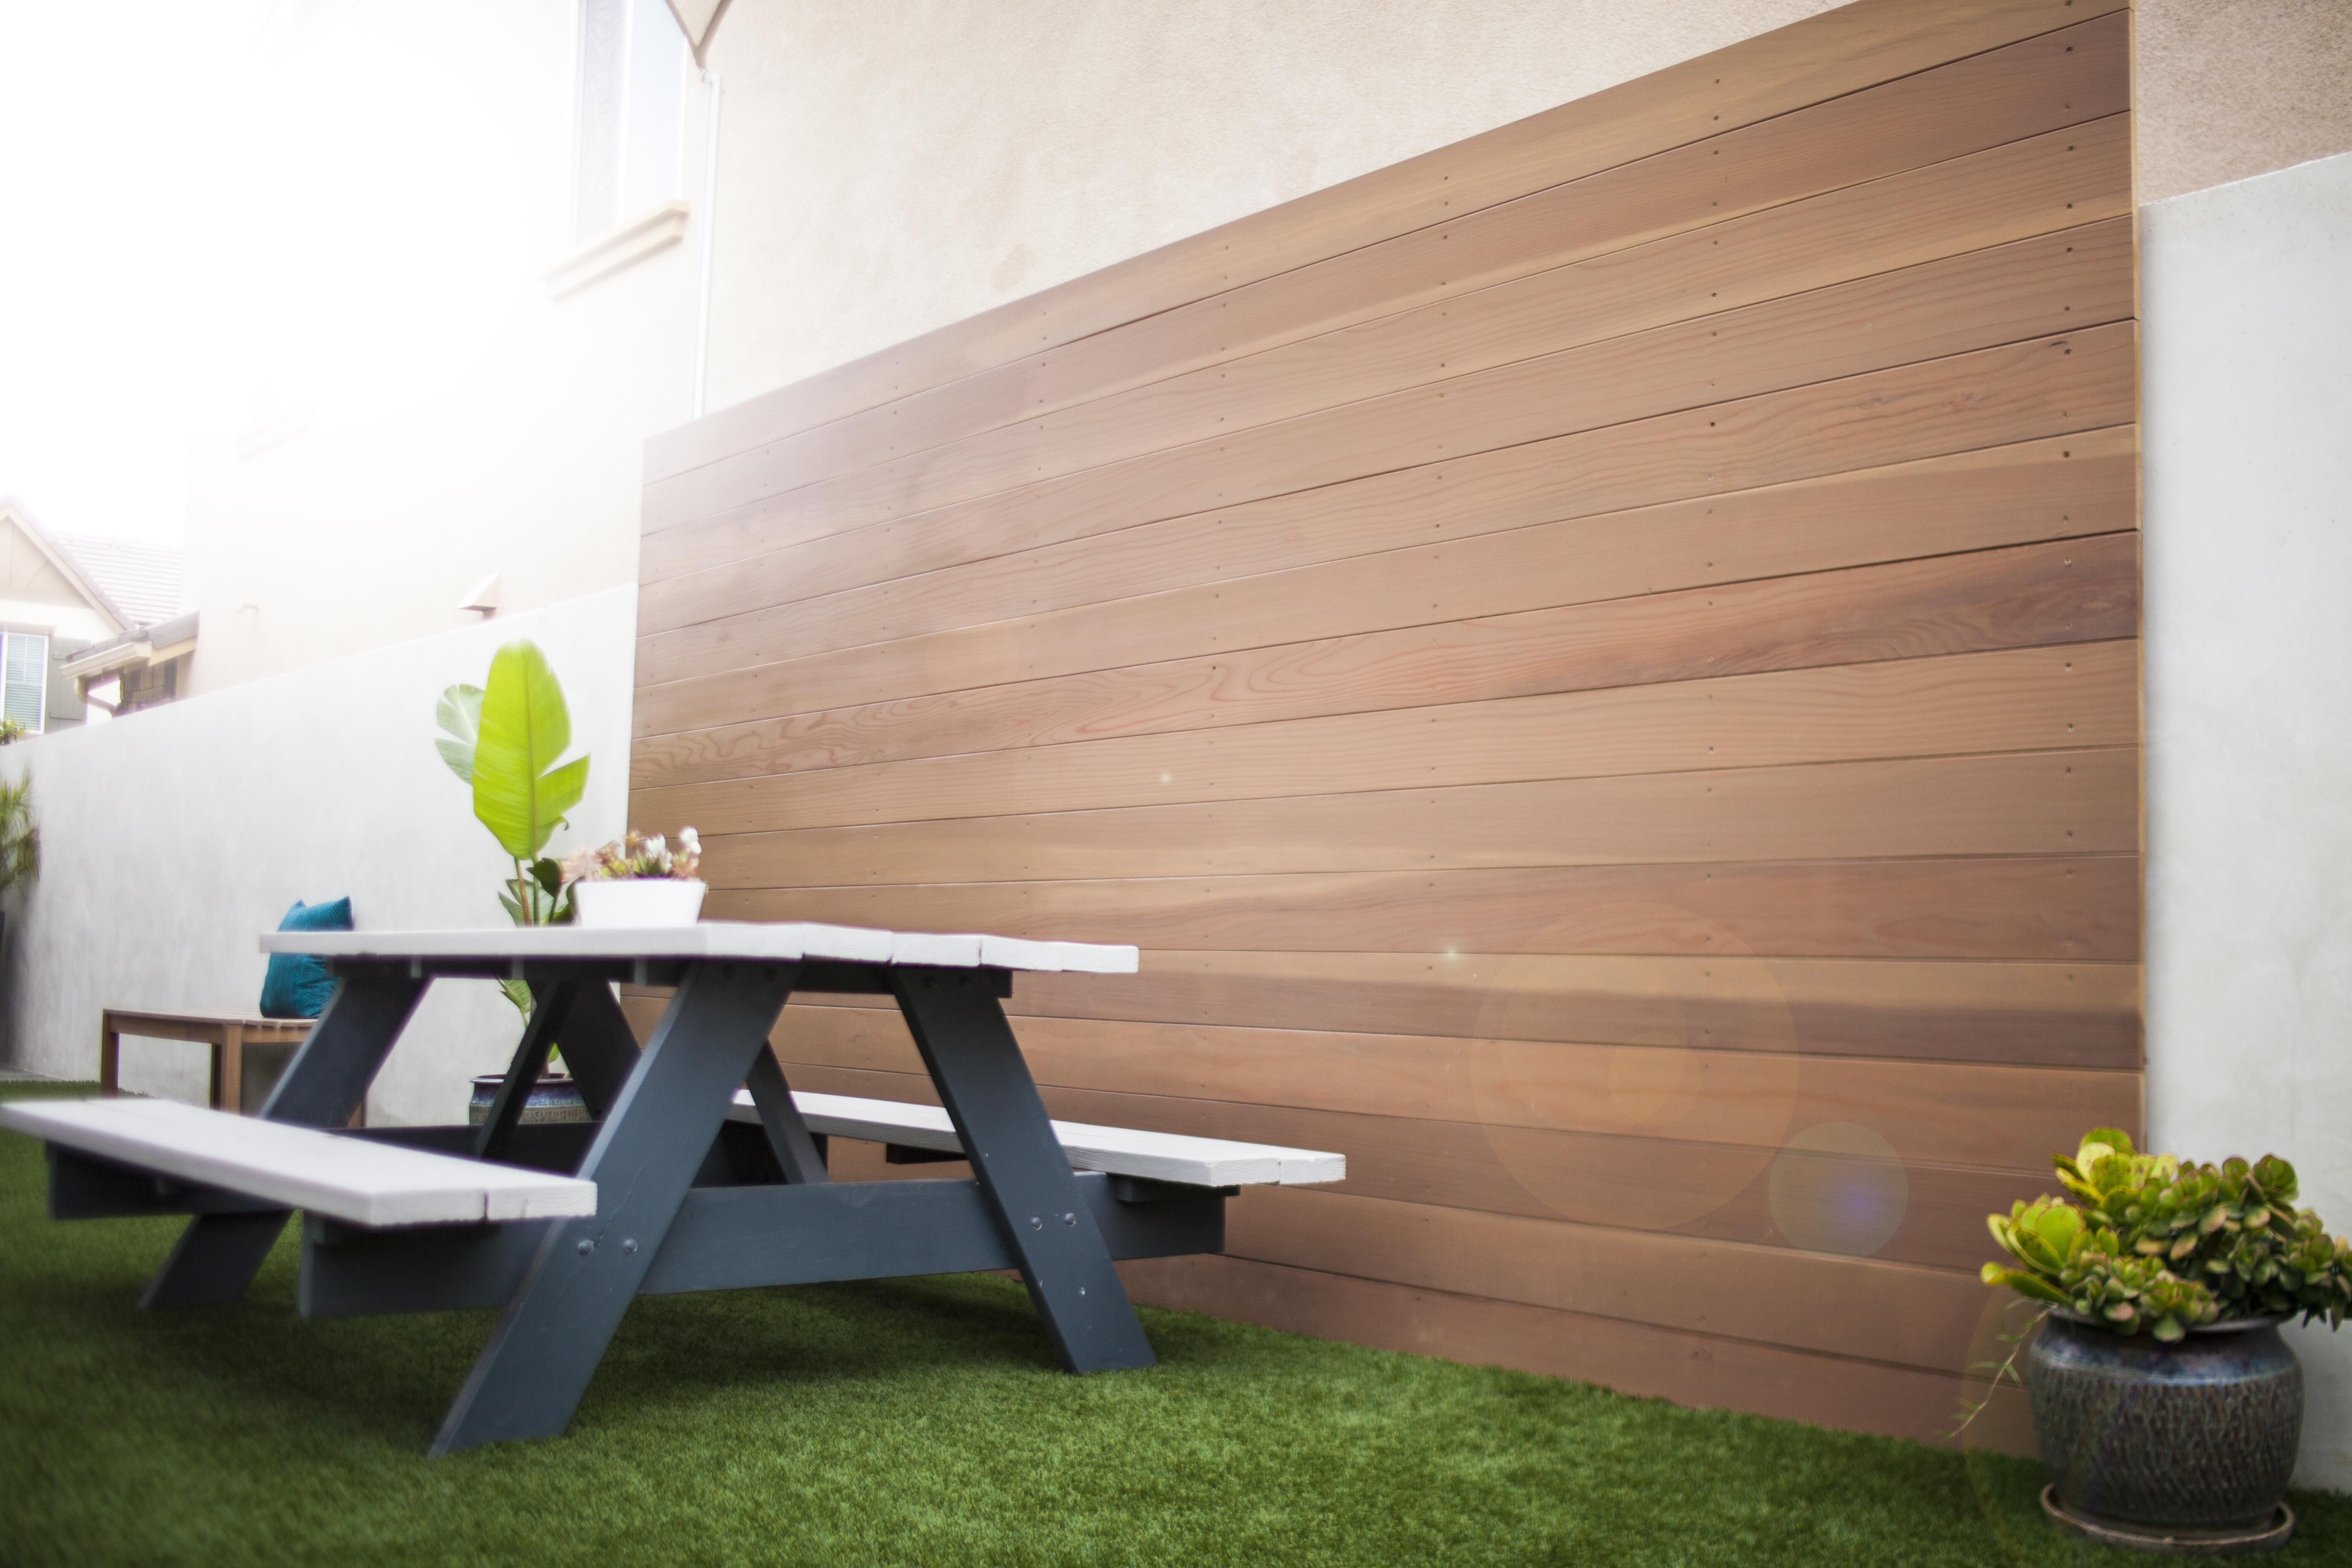 Custom Wood Accent Wall And Backyard Picnic Bench In Orange County  California Http://